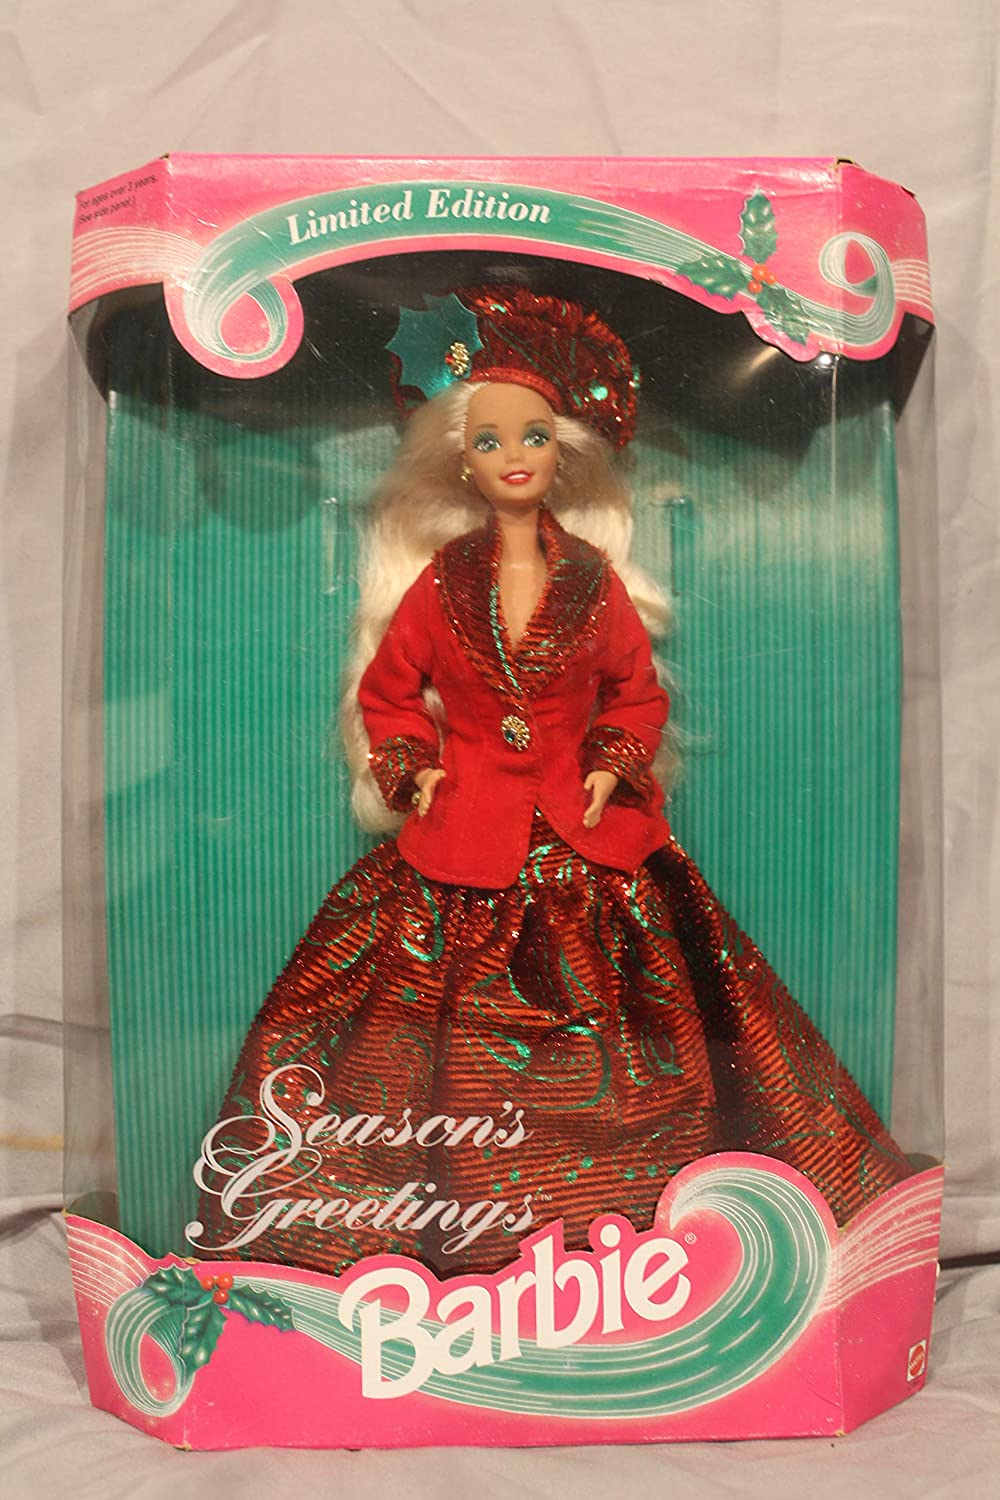 Mattel Max 63% OFF Season's Greetings Barbie Limited Edition - online shop